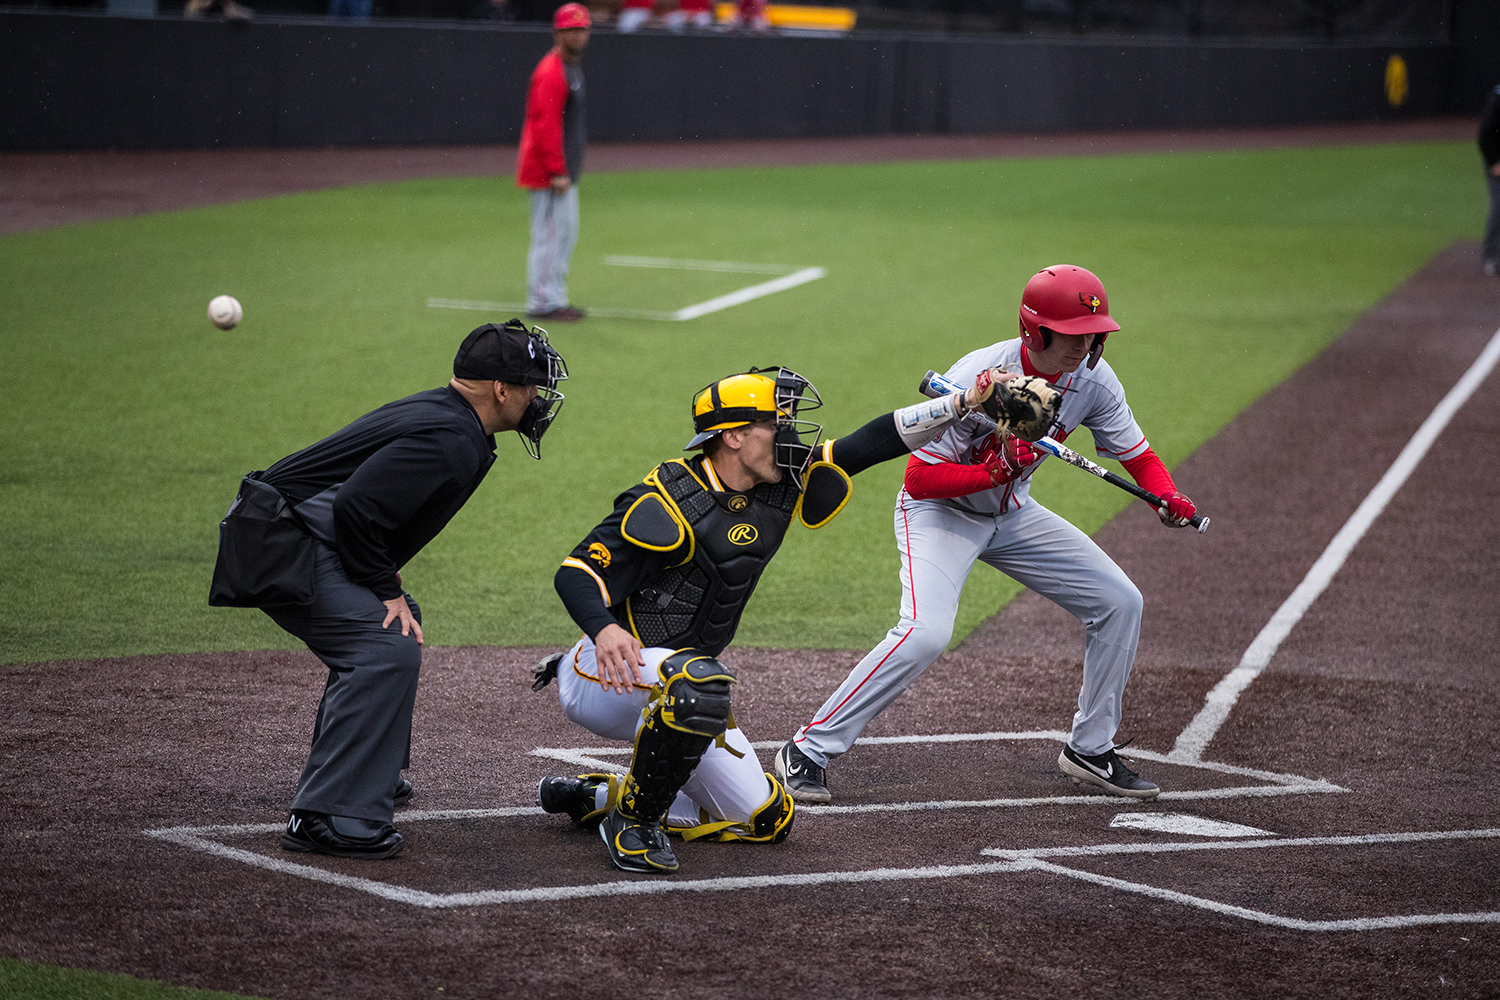 Iowa's Austin Martin misses a pitch during a baseball game against Illinois State on Wednesday, Apr. 3, 2019. The Hawkeyes lost to the Redbirds 11-6. (Roman Slabach/The Daily Iowan)